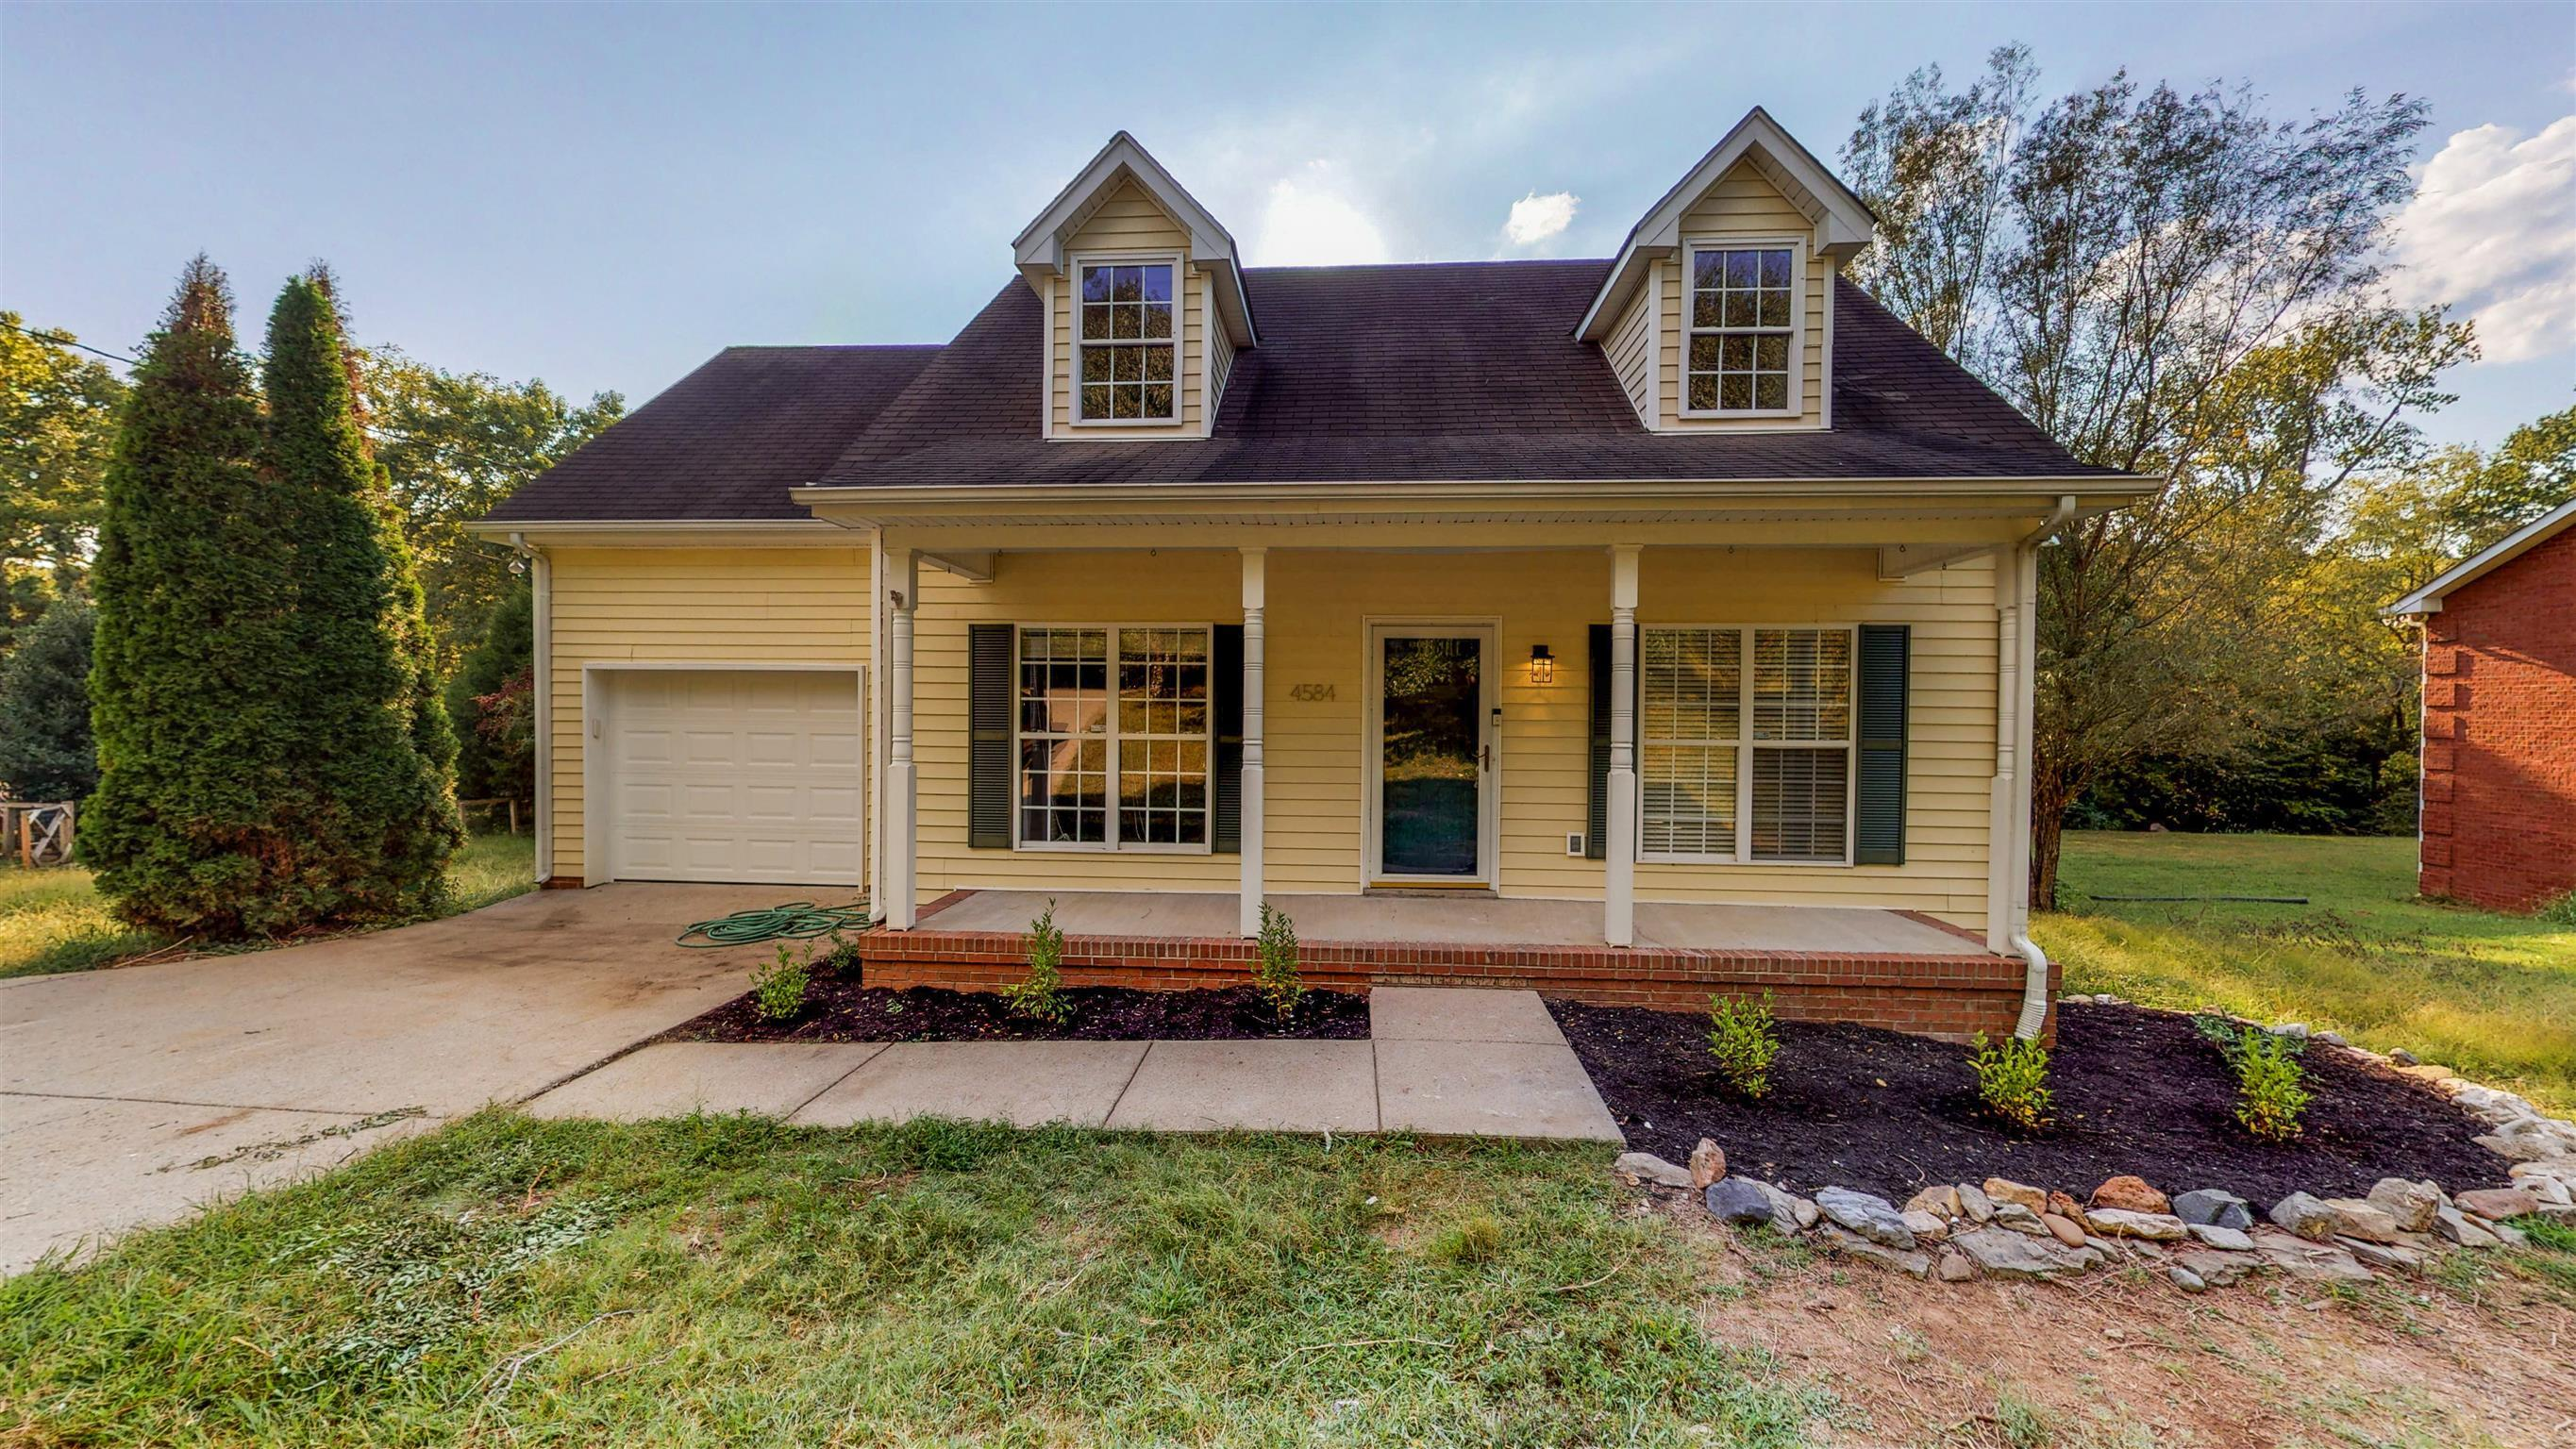 $264,900 - 3Br/2Ba -  for Sale in Mill Stream, Whites Creek